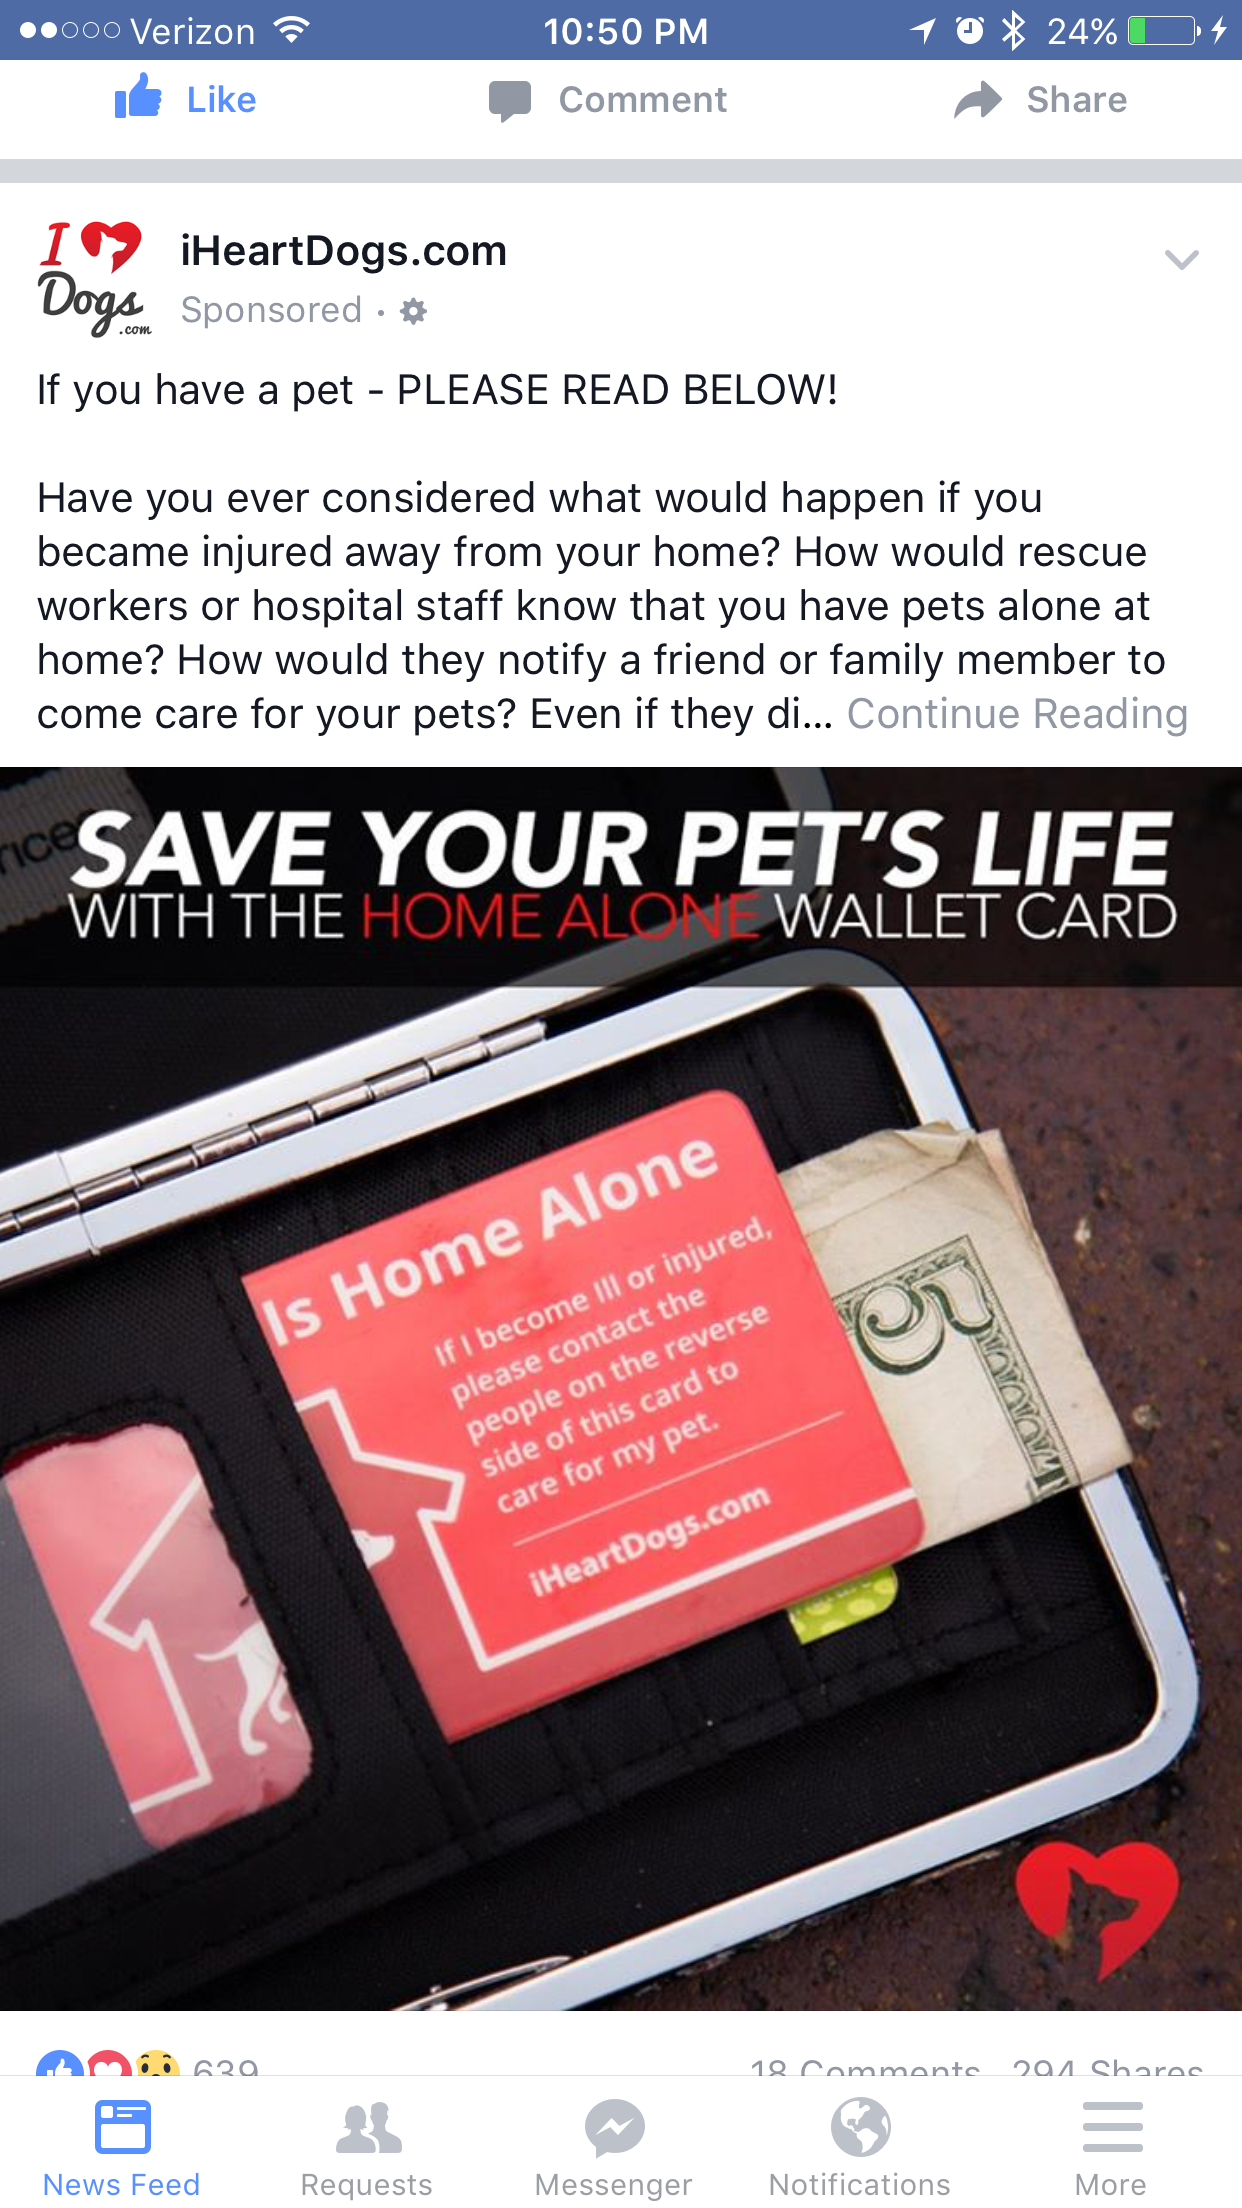 Pin By Jennifer Logan On Products I Want Dog Waiting Rescue Workers Pet Life